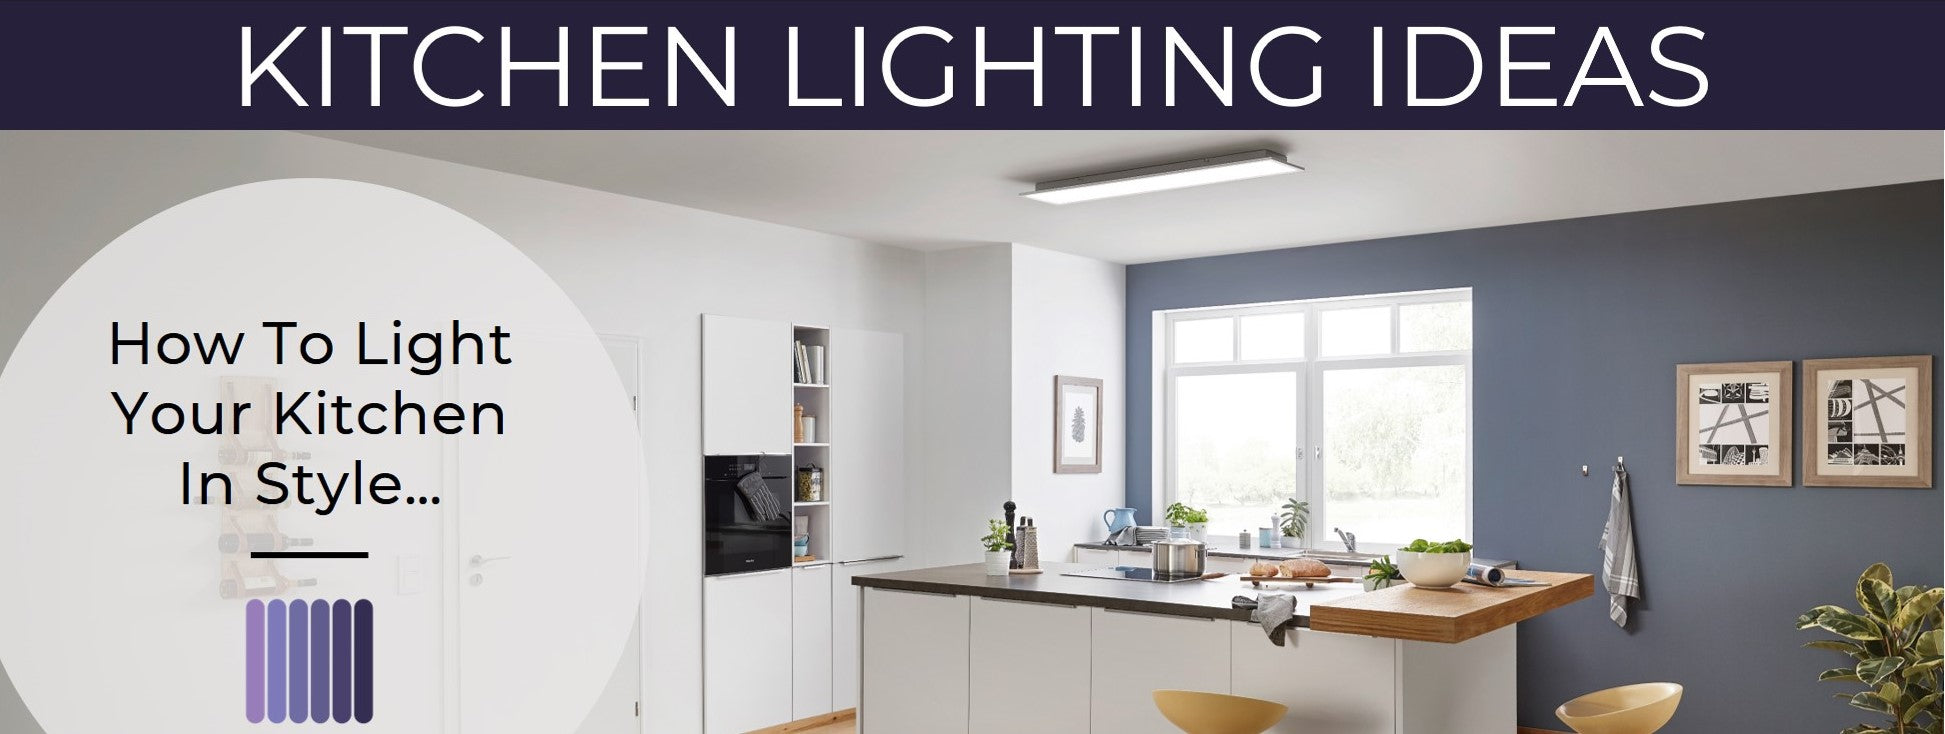 Kitchen Lighting Ideas How To Light Your Kitchen In Style